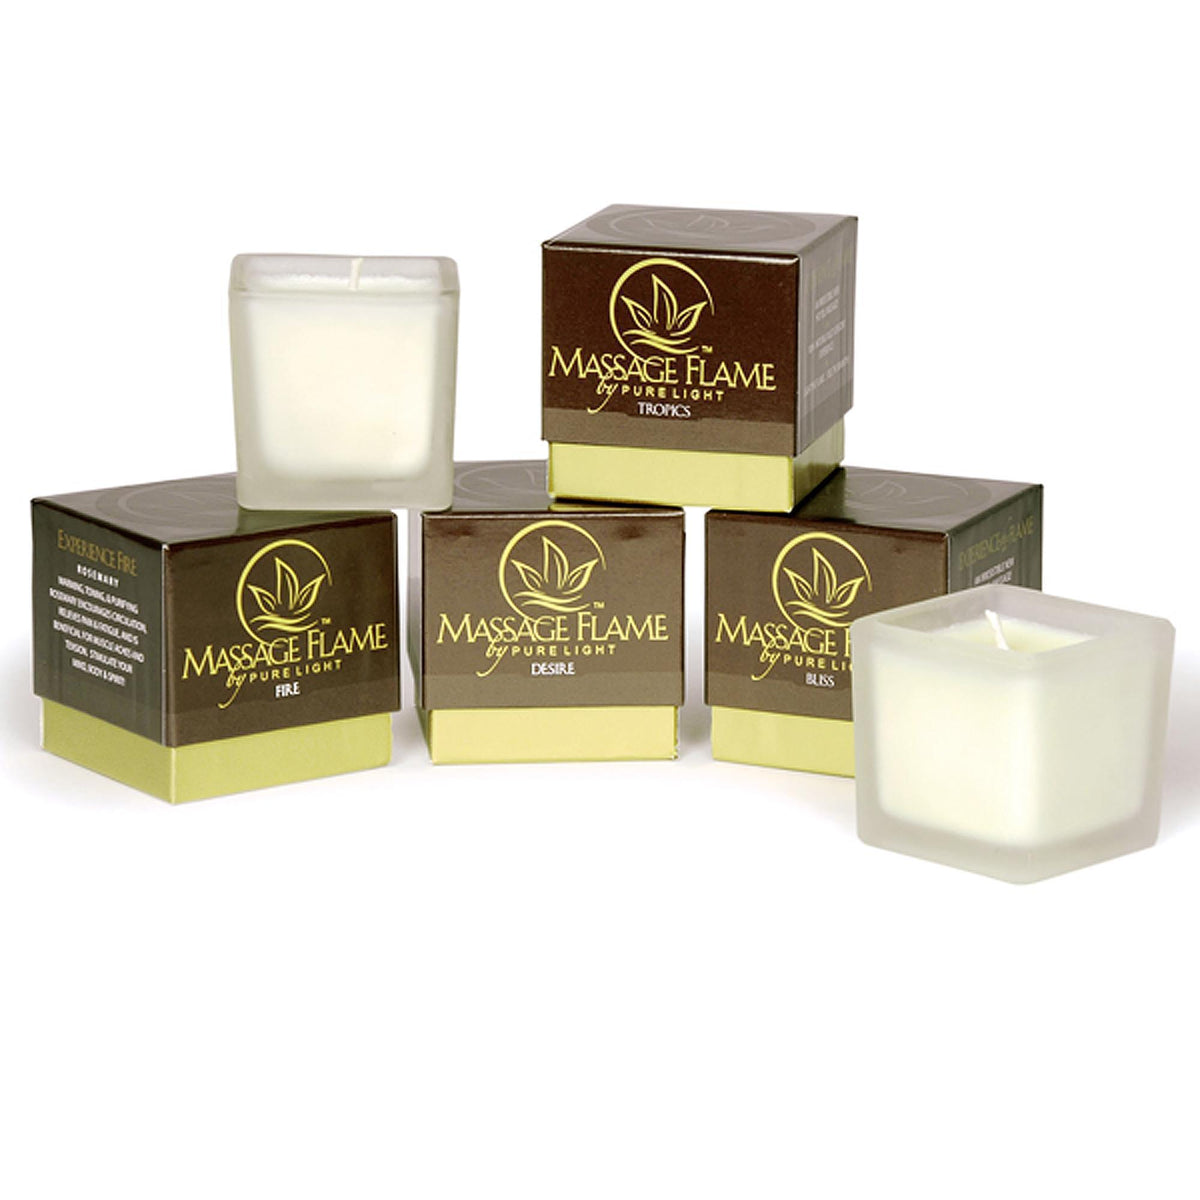 Pure Light Fire Massage Flame Candle